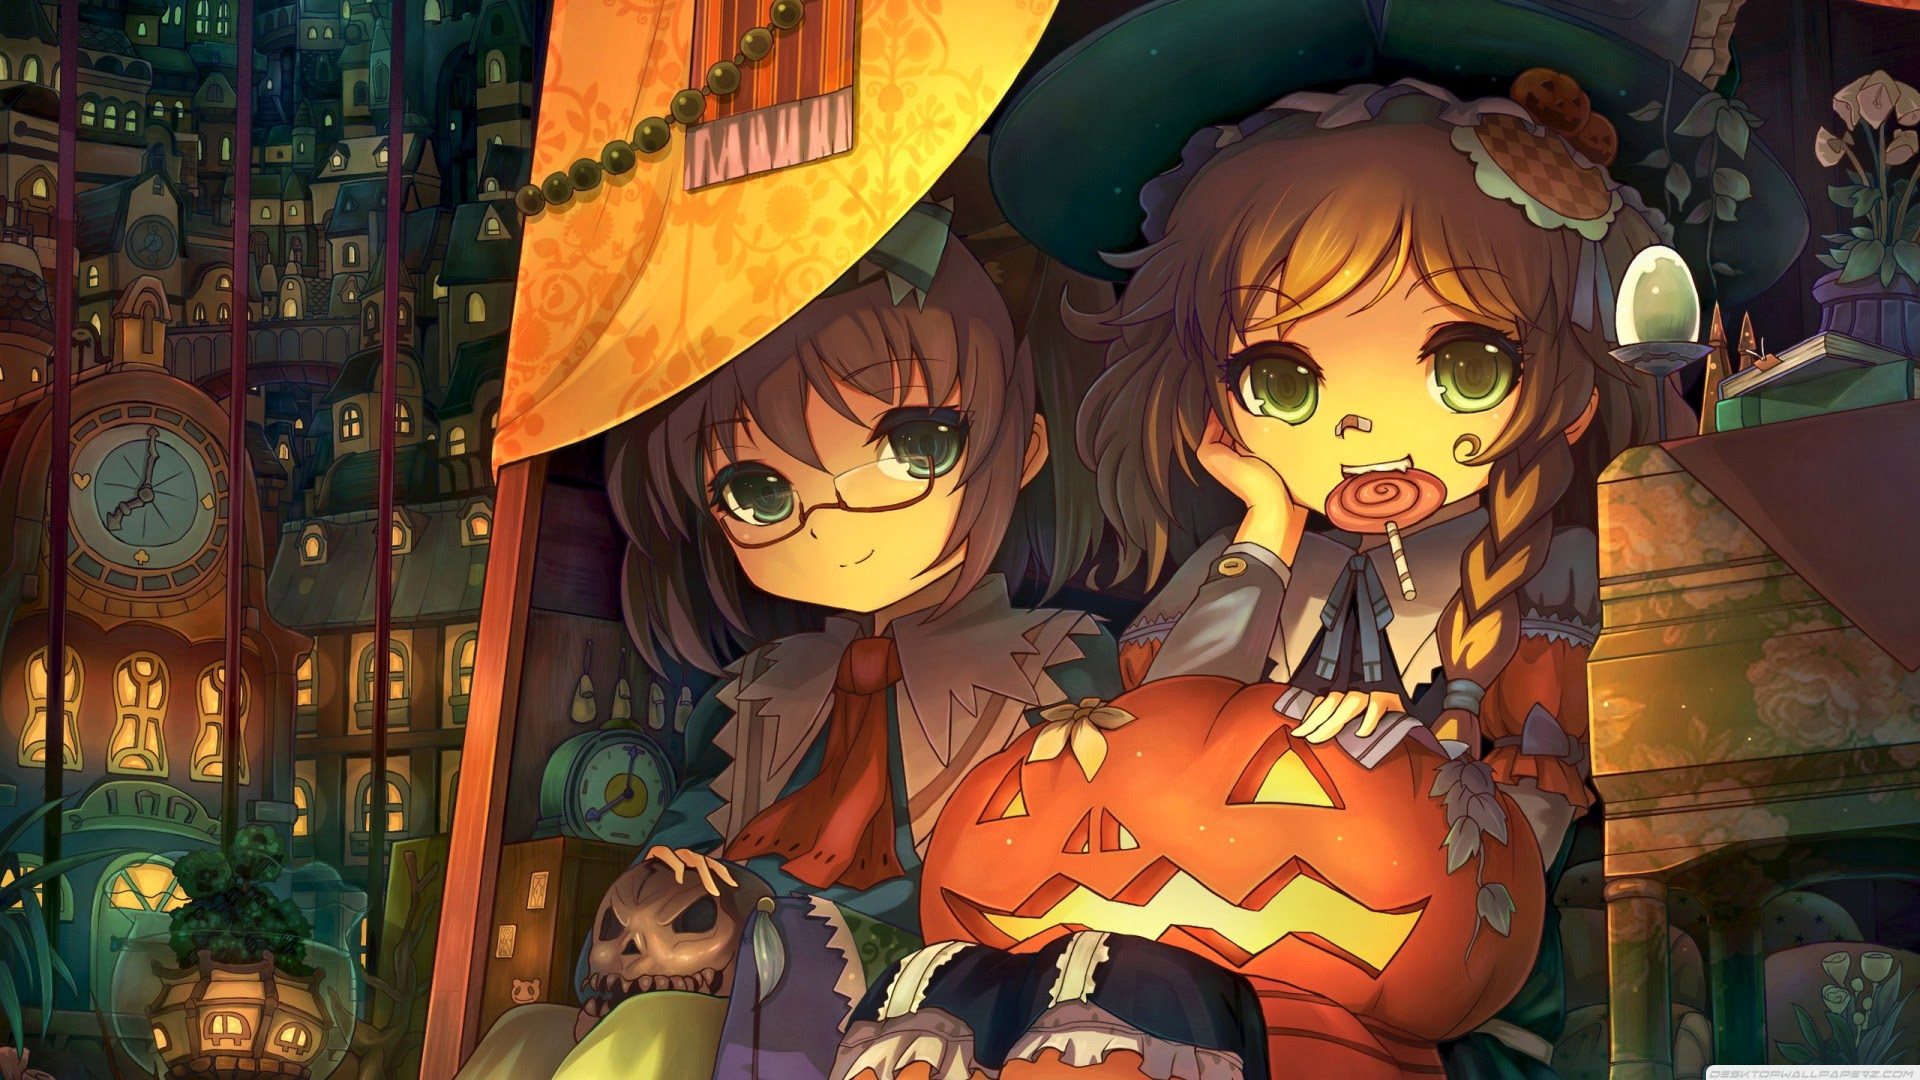 Cute anime wallpapers 1920x1080